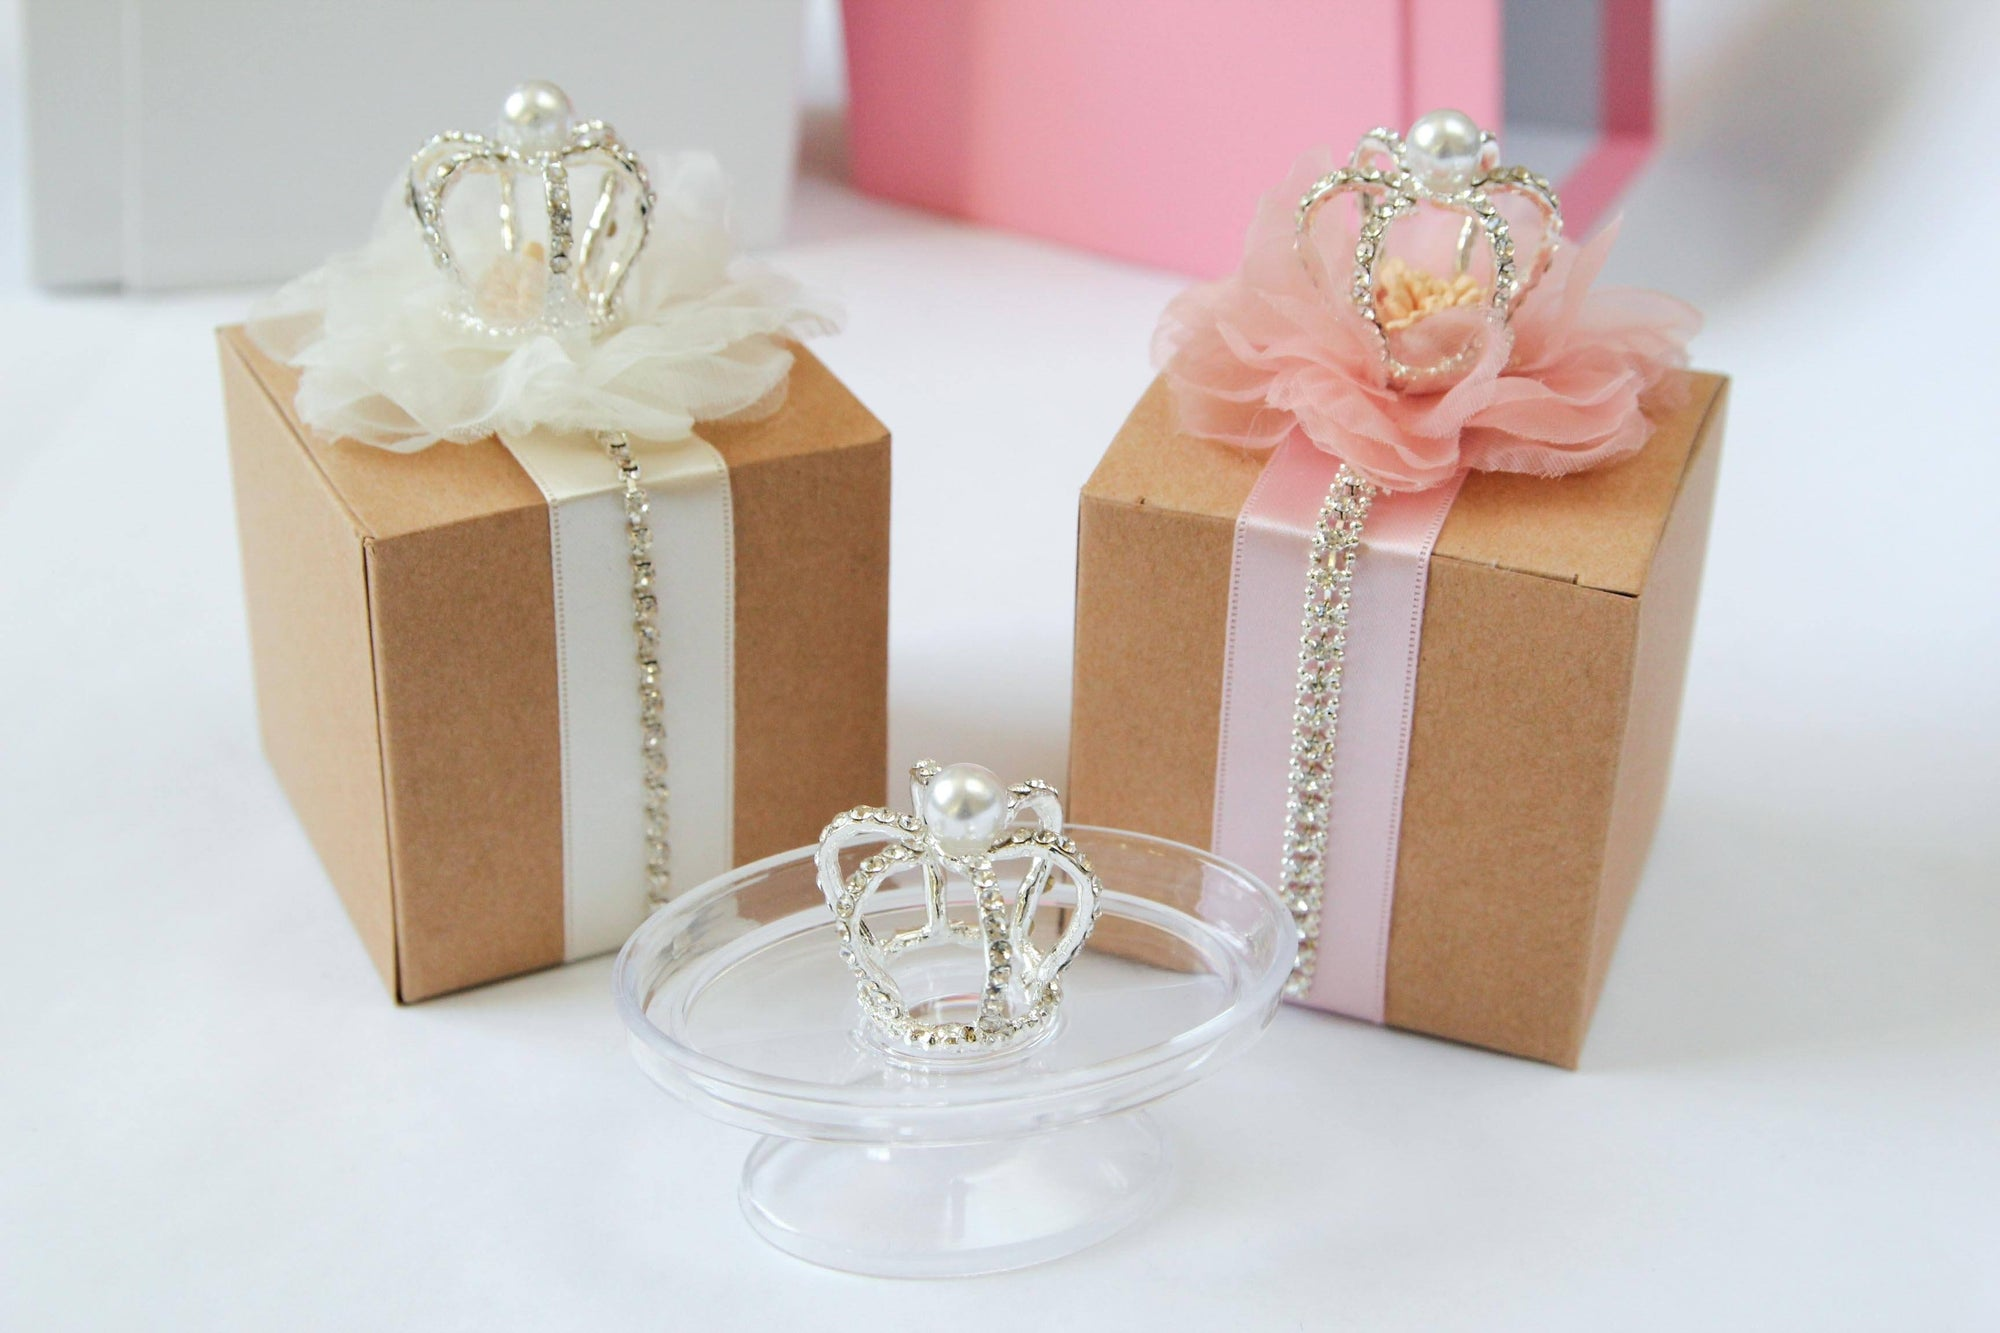 Rhinestone Crown with Pearl